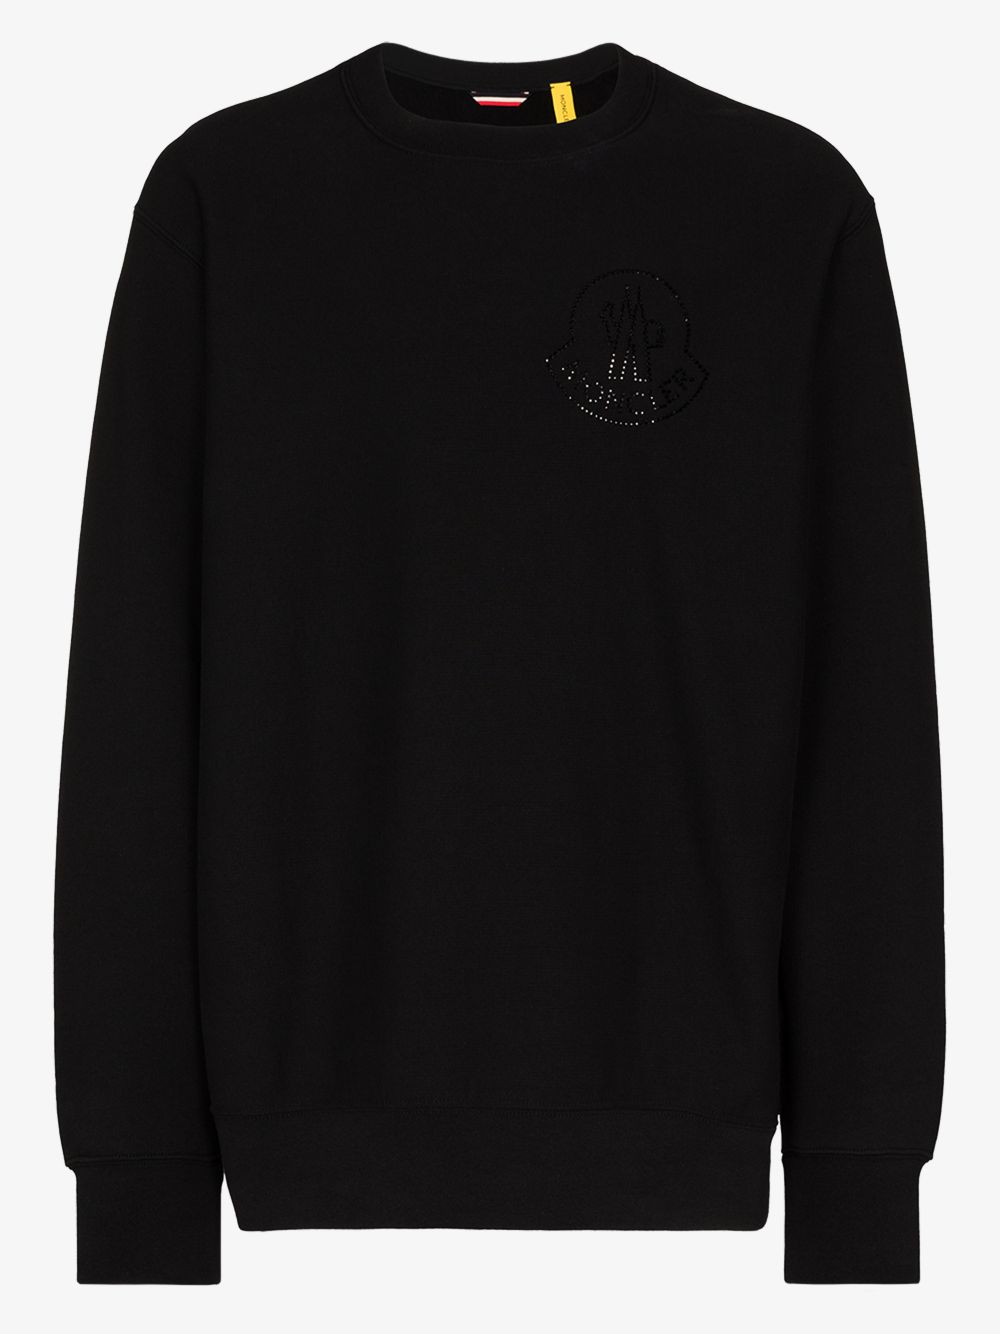 2 Moncler Genius 1950 long-sleeved black wool sweater MONCLER GENIUS |  | 8G723-40-V8188999